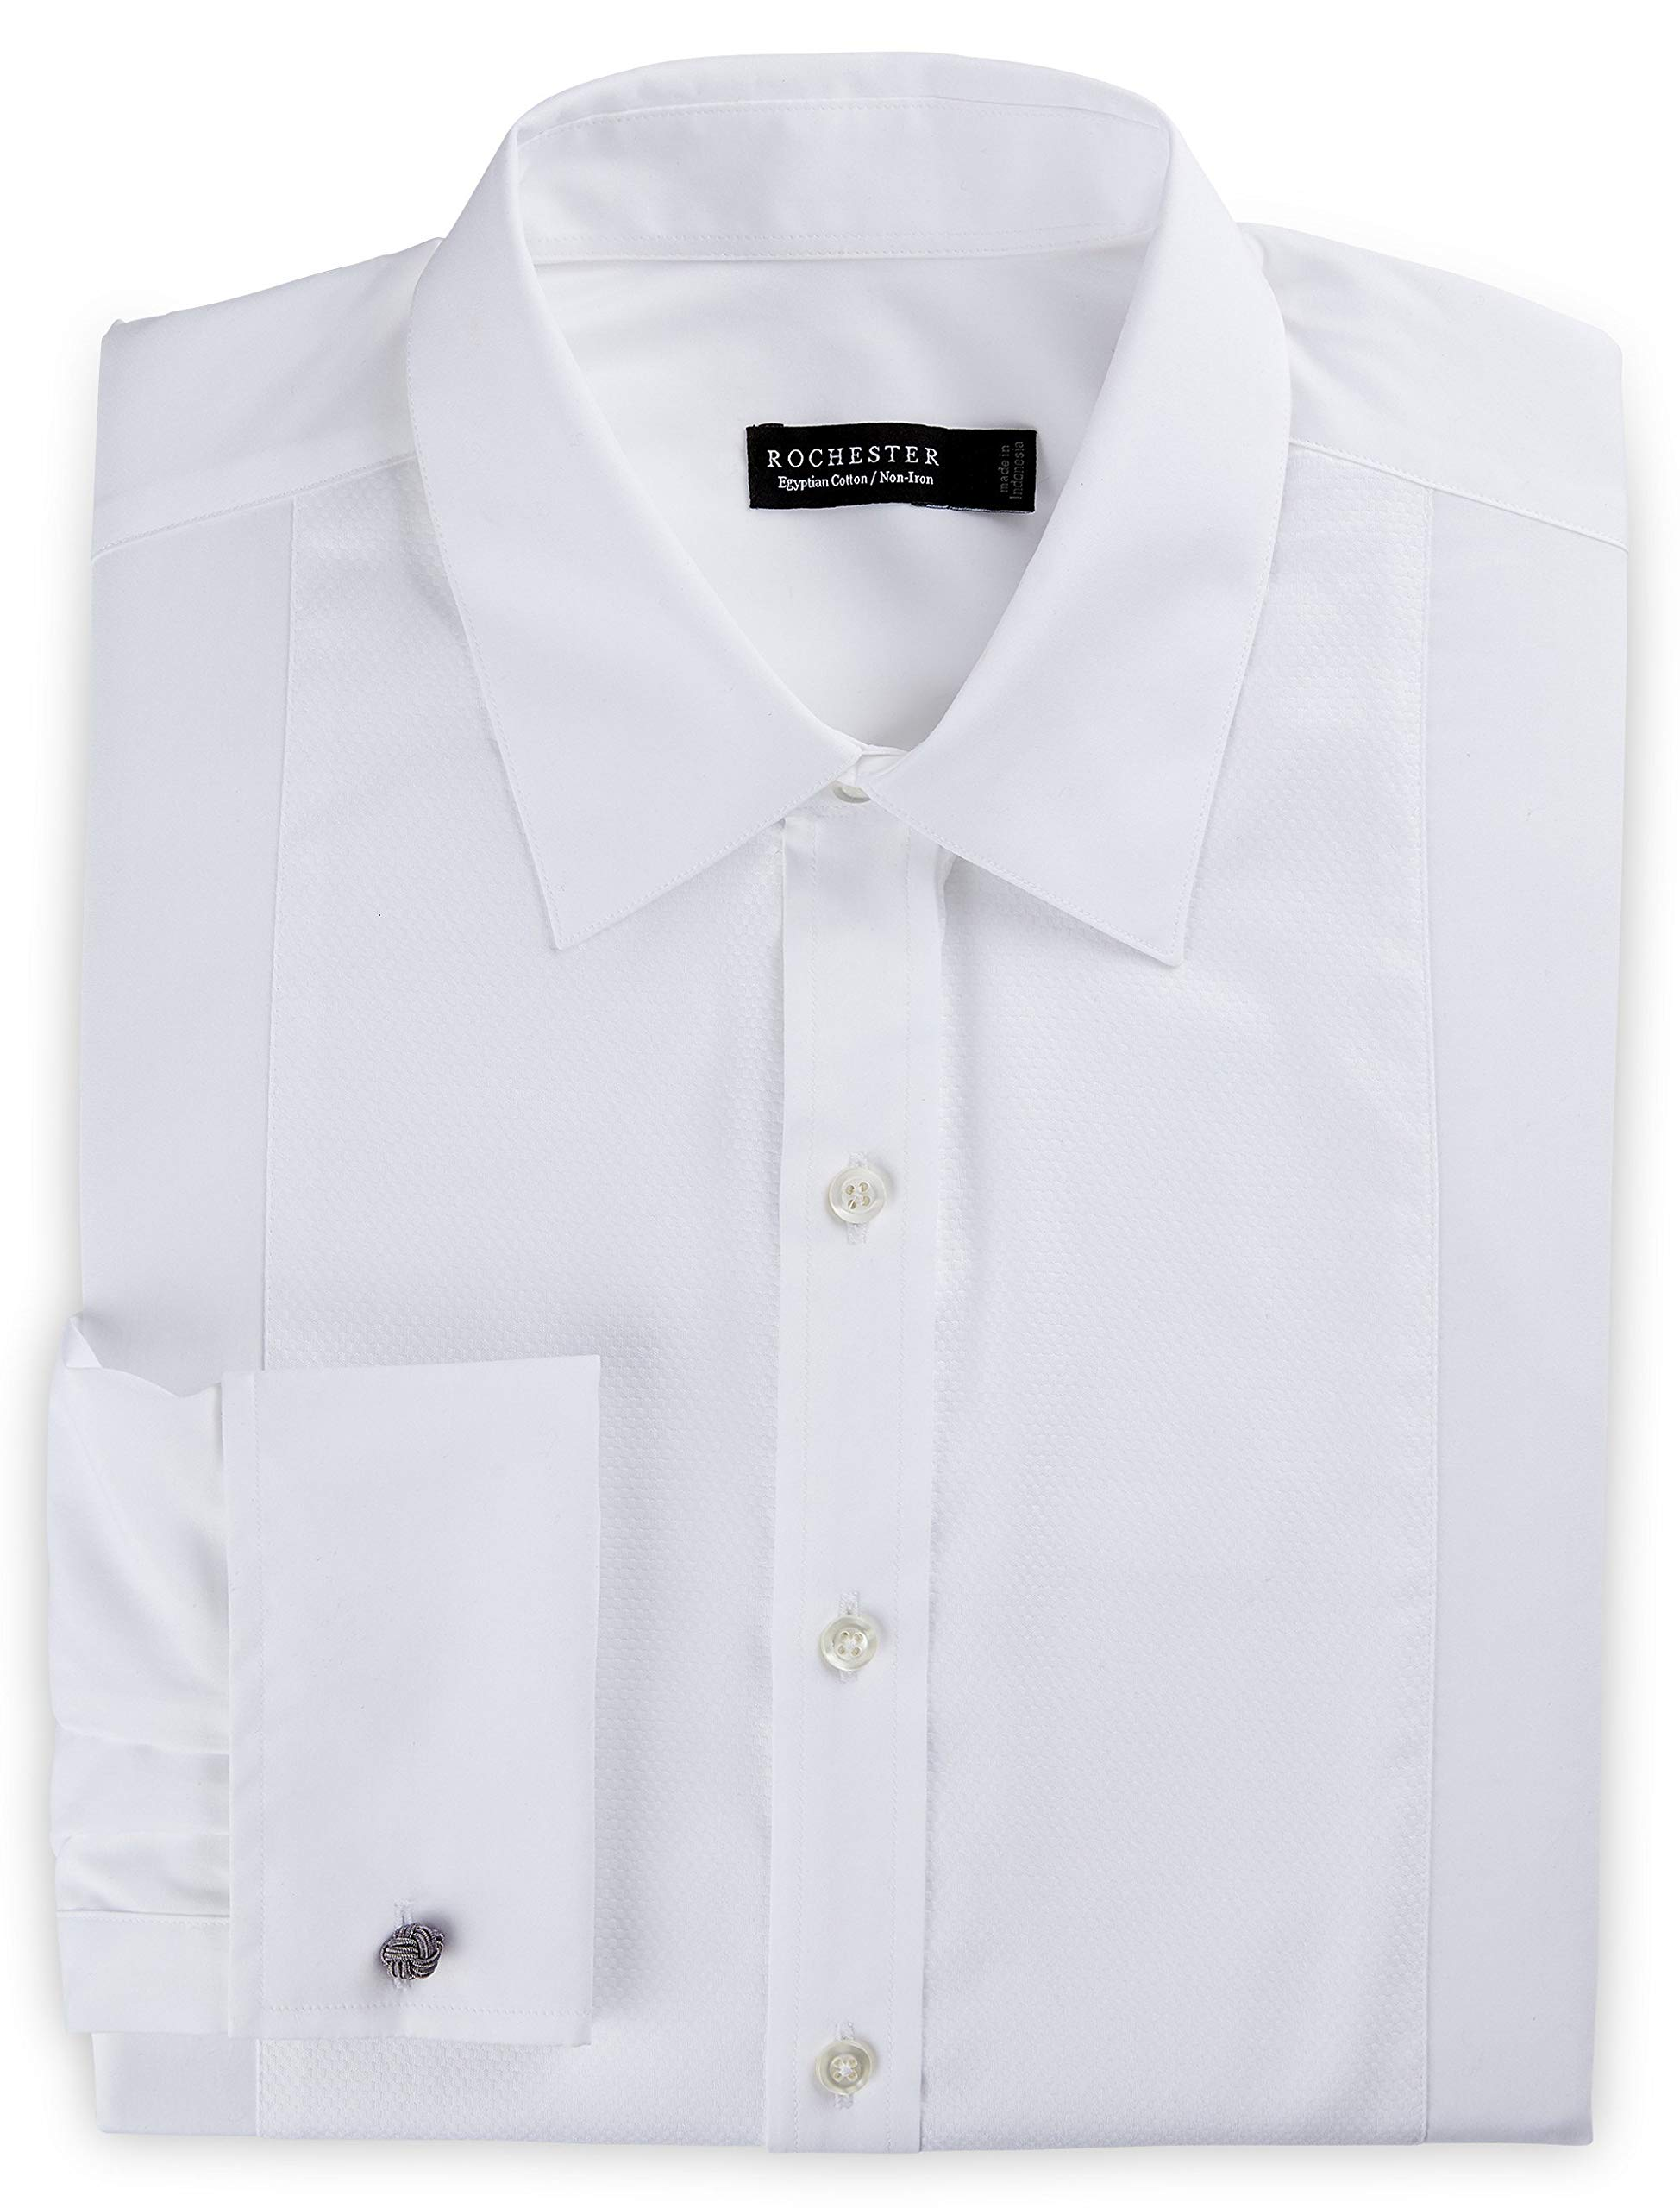 Rochester by DXL Big and Tall Non-Iron Formal Tuxedo Shirt, White, 18-36/37 by Rochester